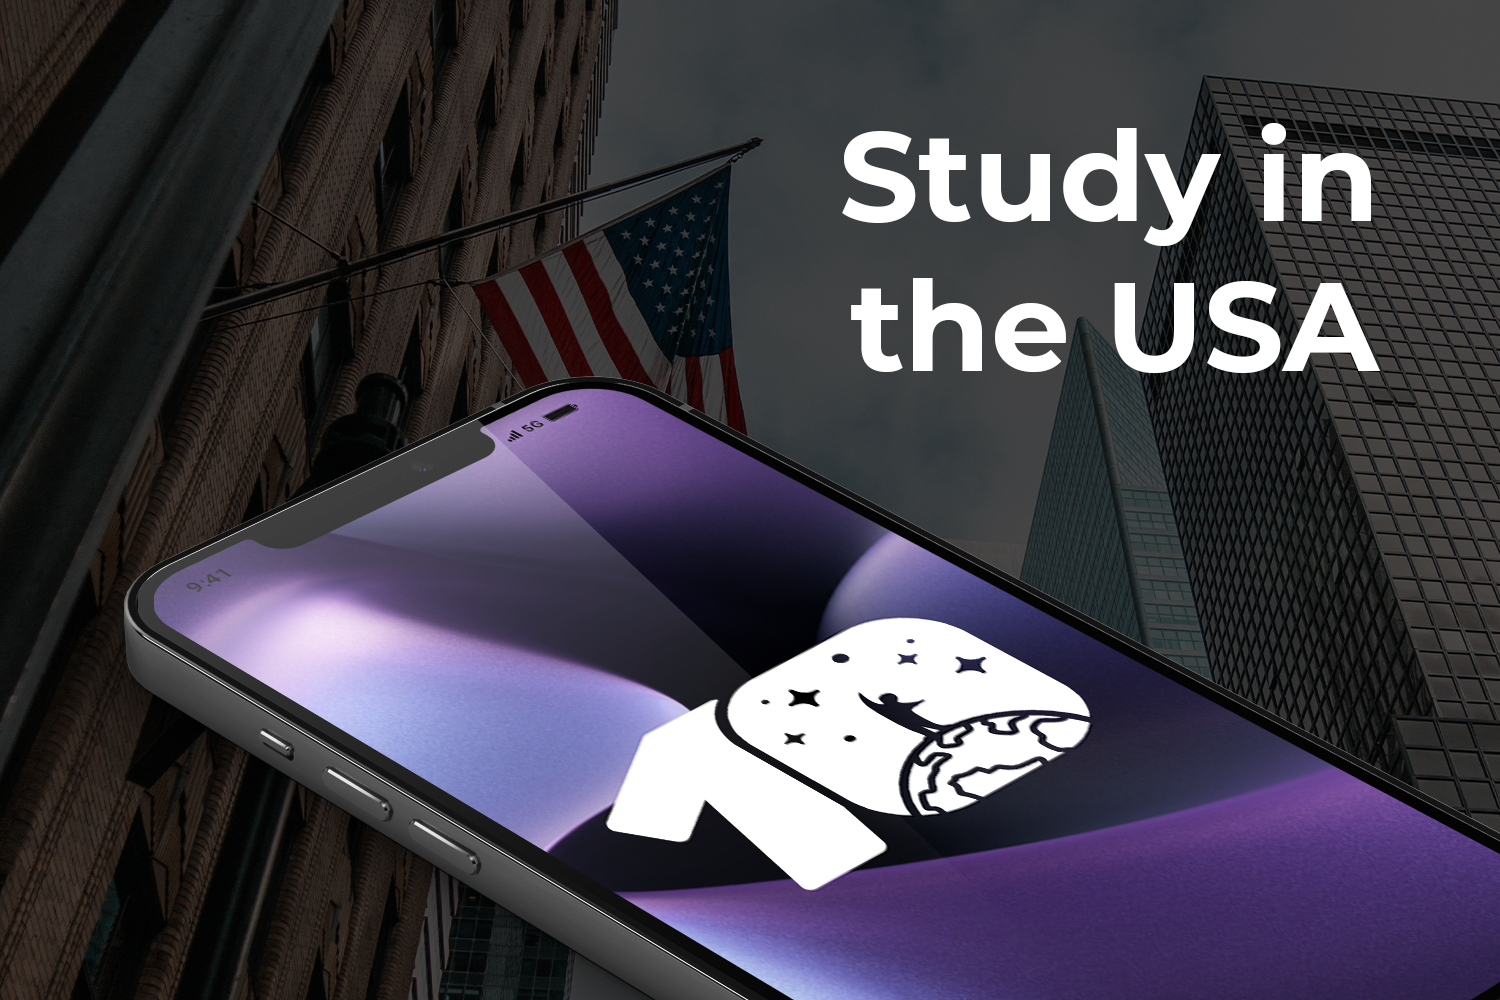 Study in the USA 🇺🇸